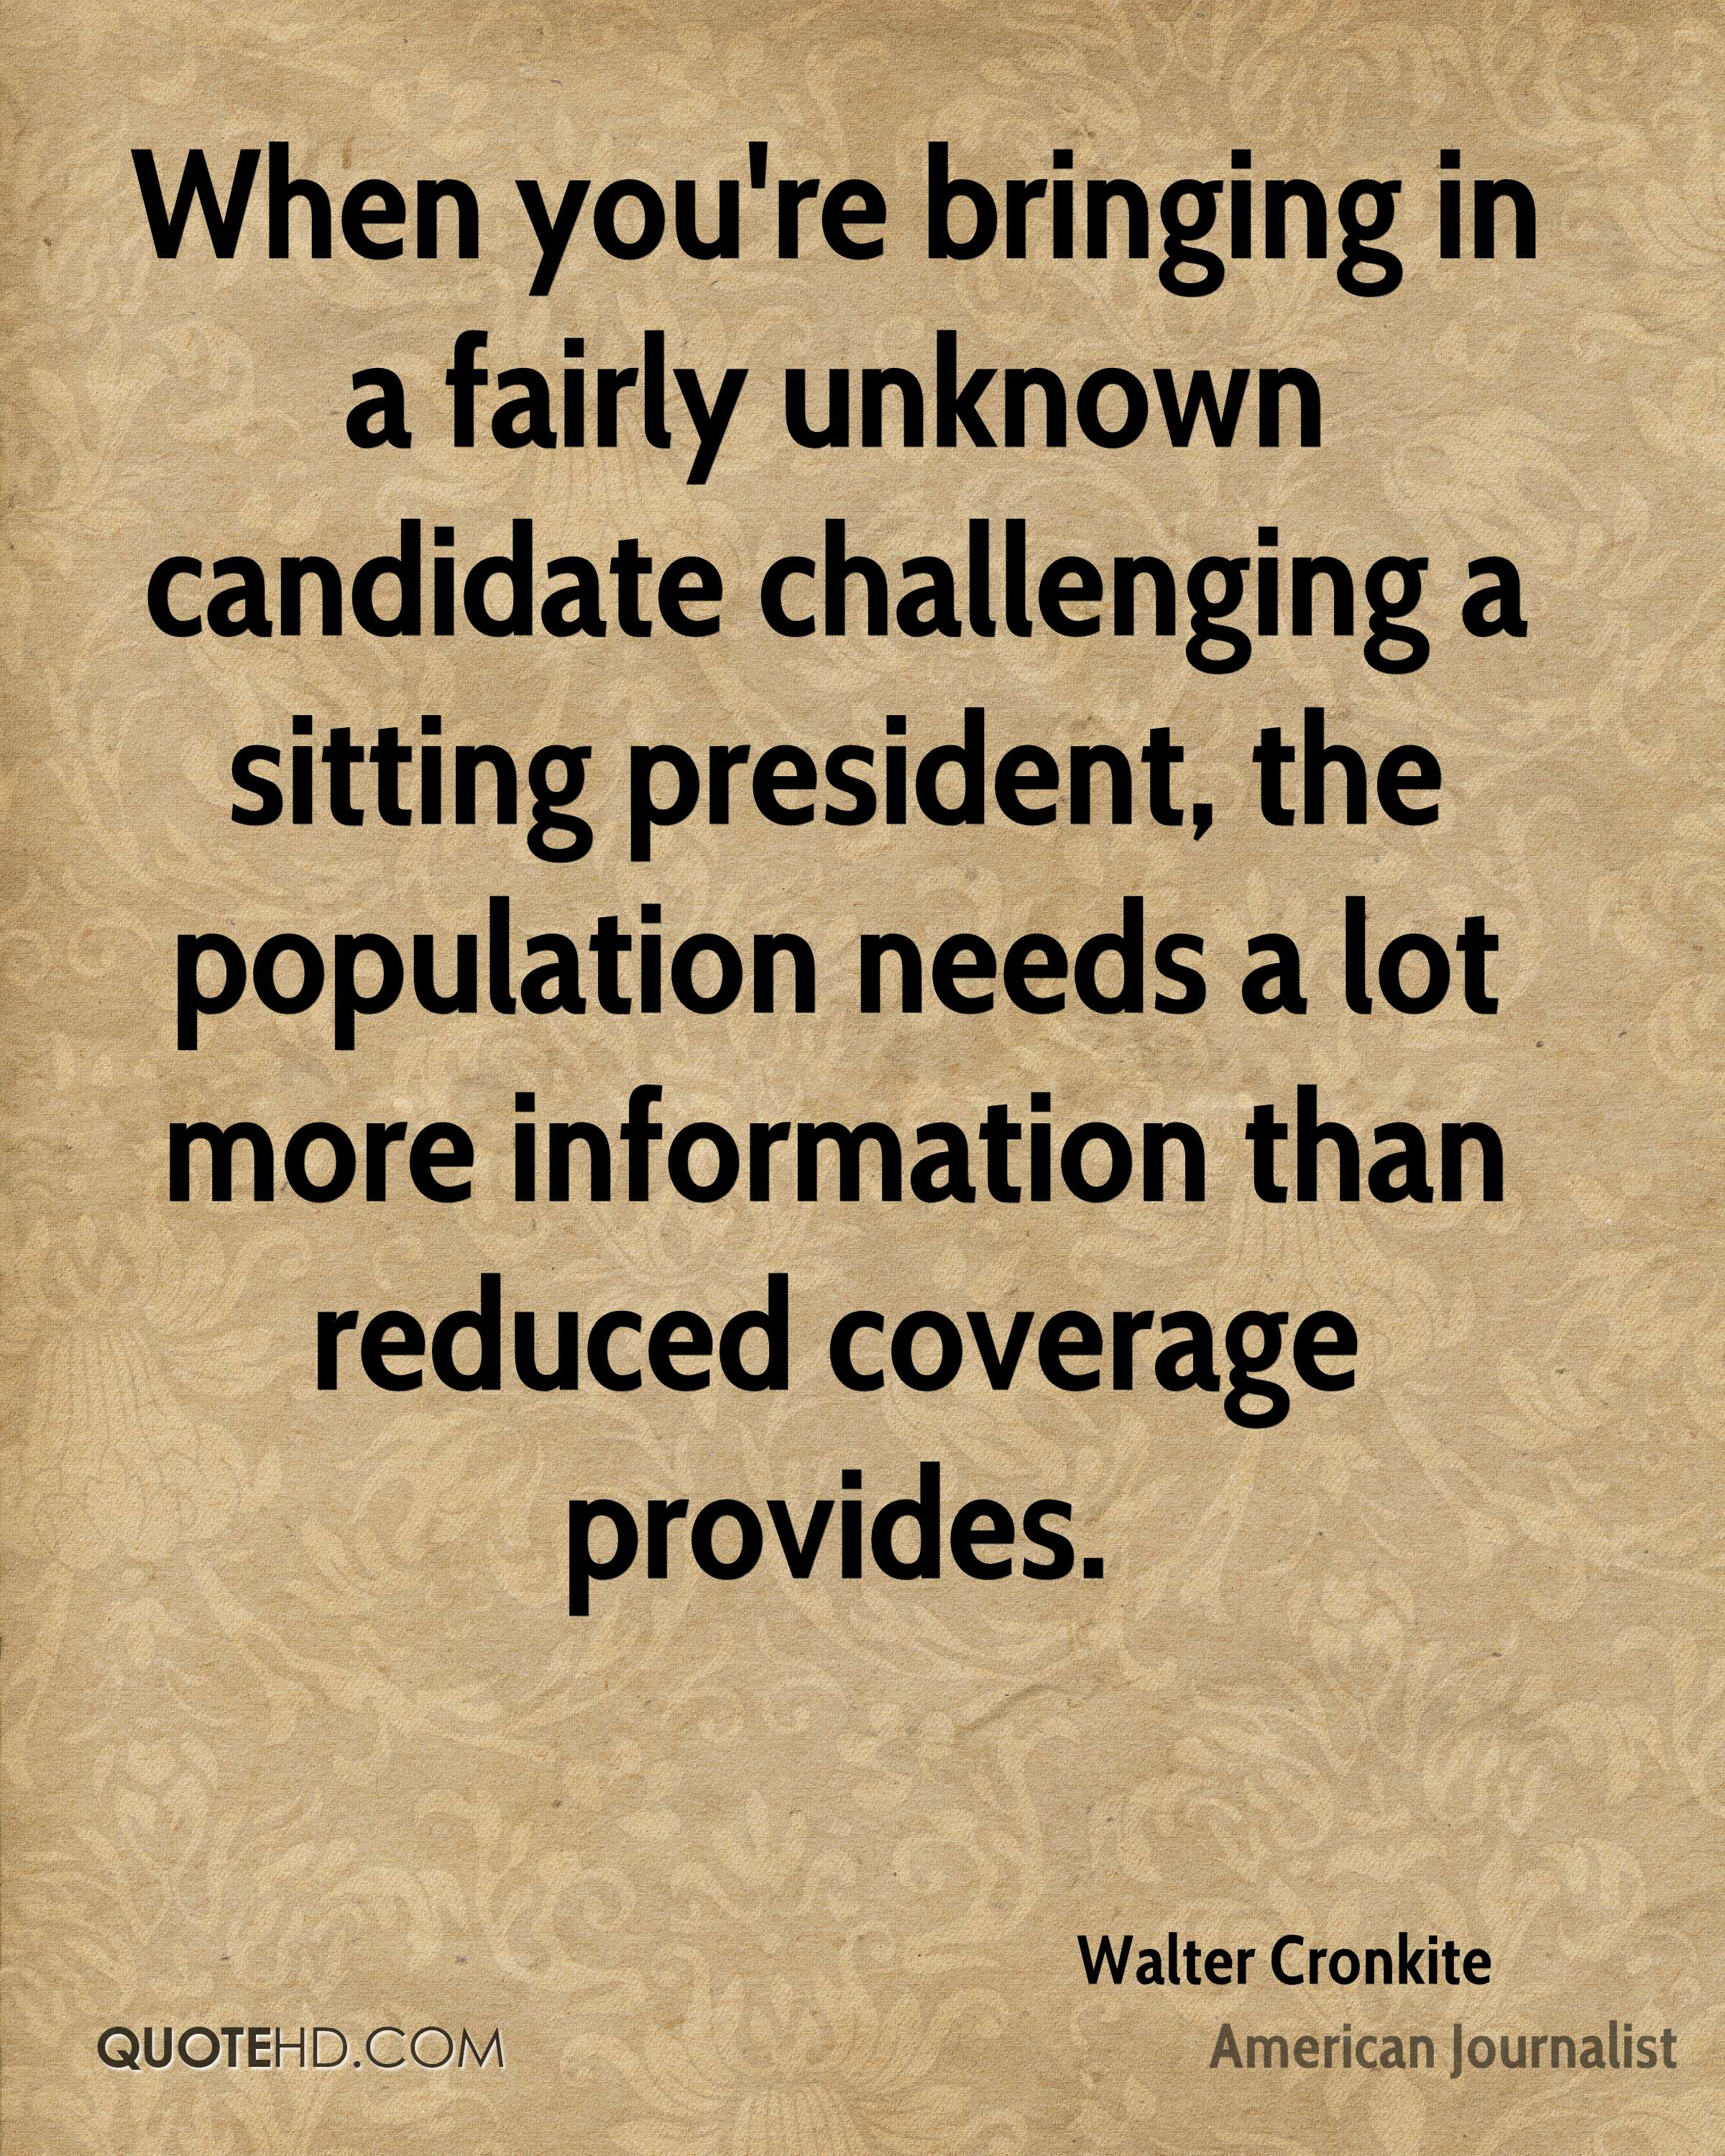 When you're bringing in a fairly unknown candidate challenging a sitting president, the population needs a lot more information than reduced coverage provides.